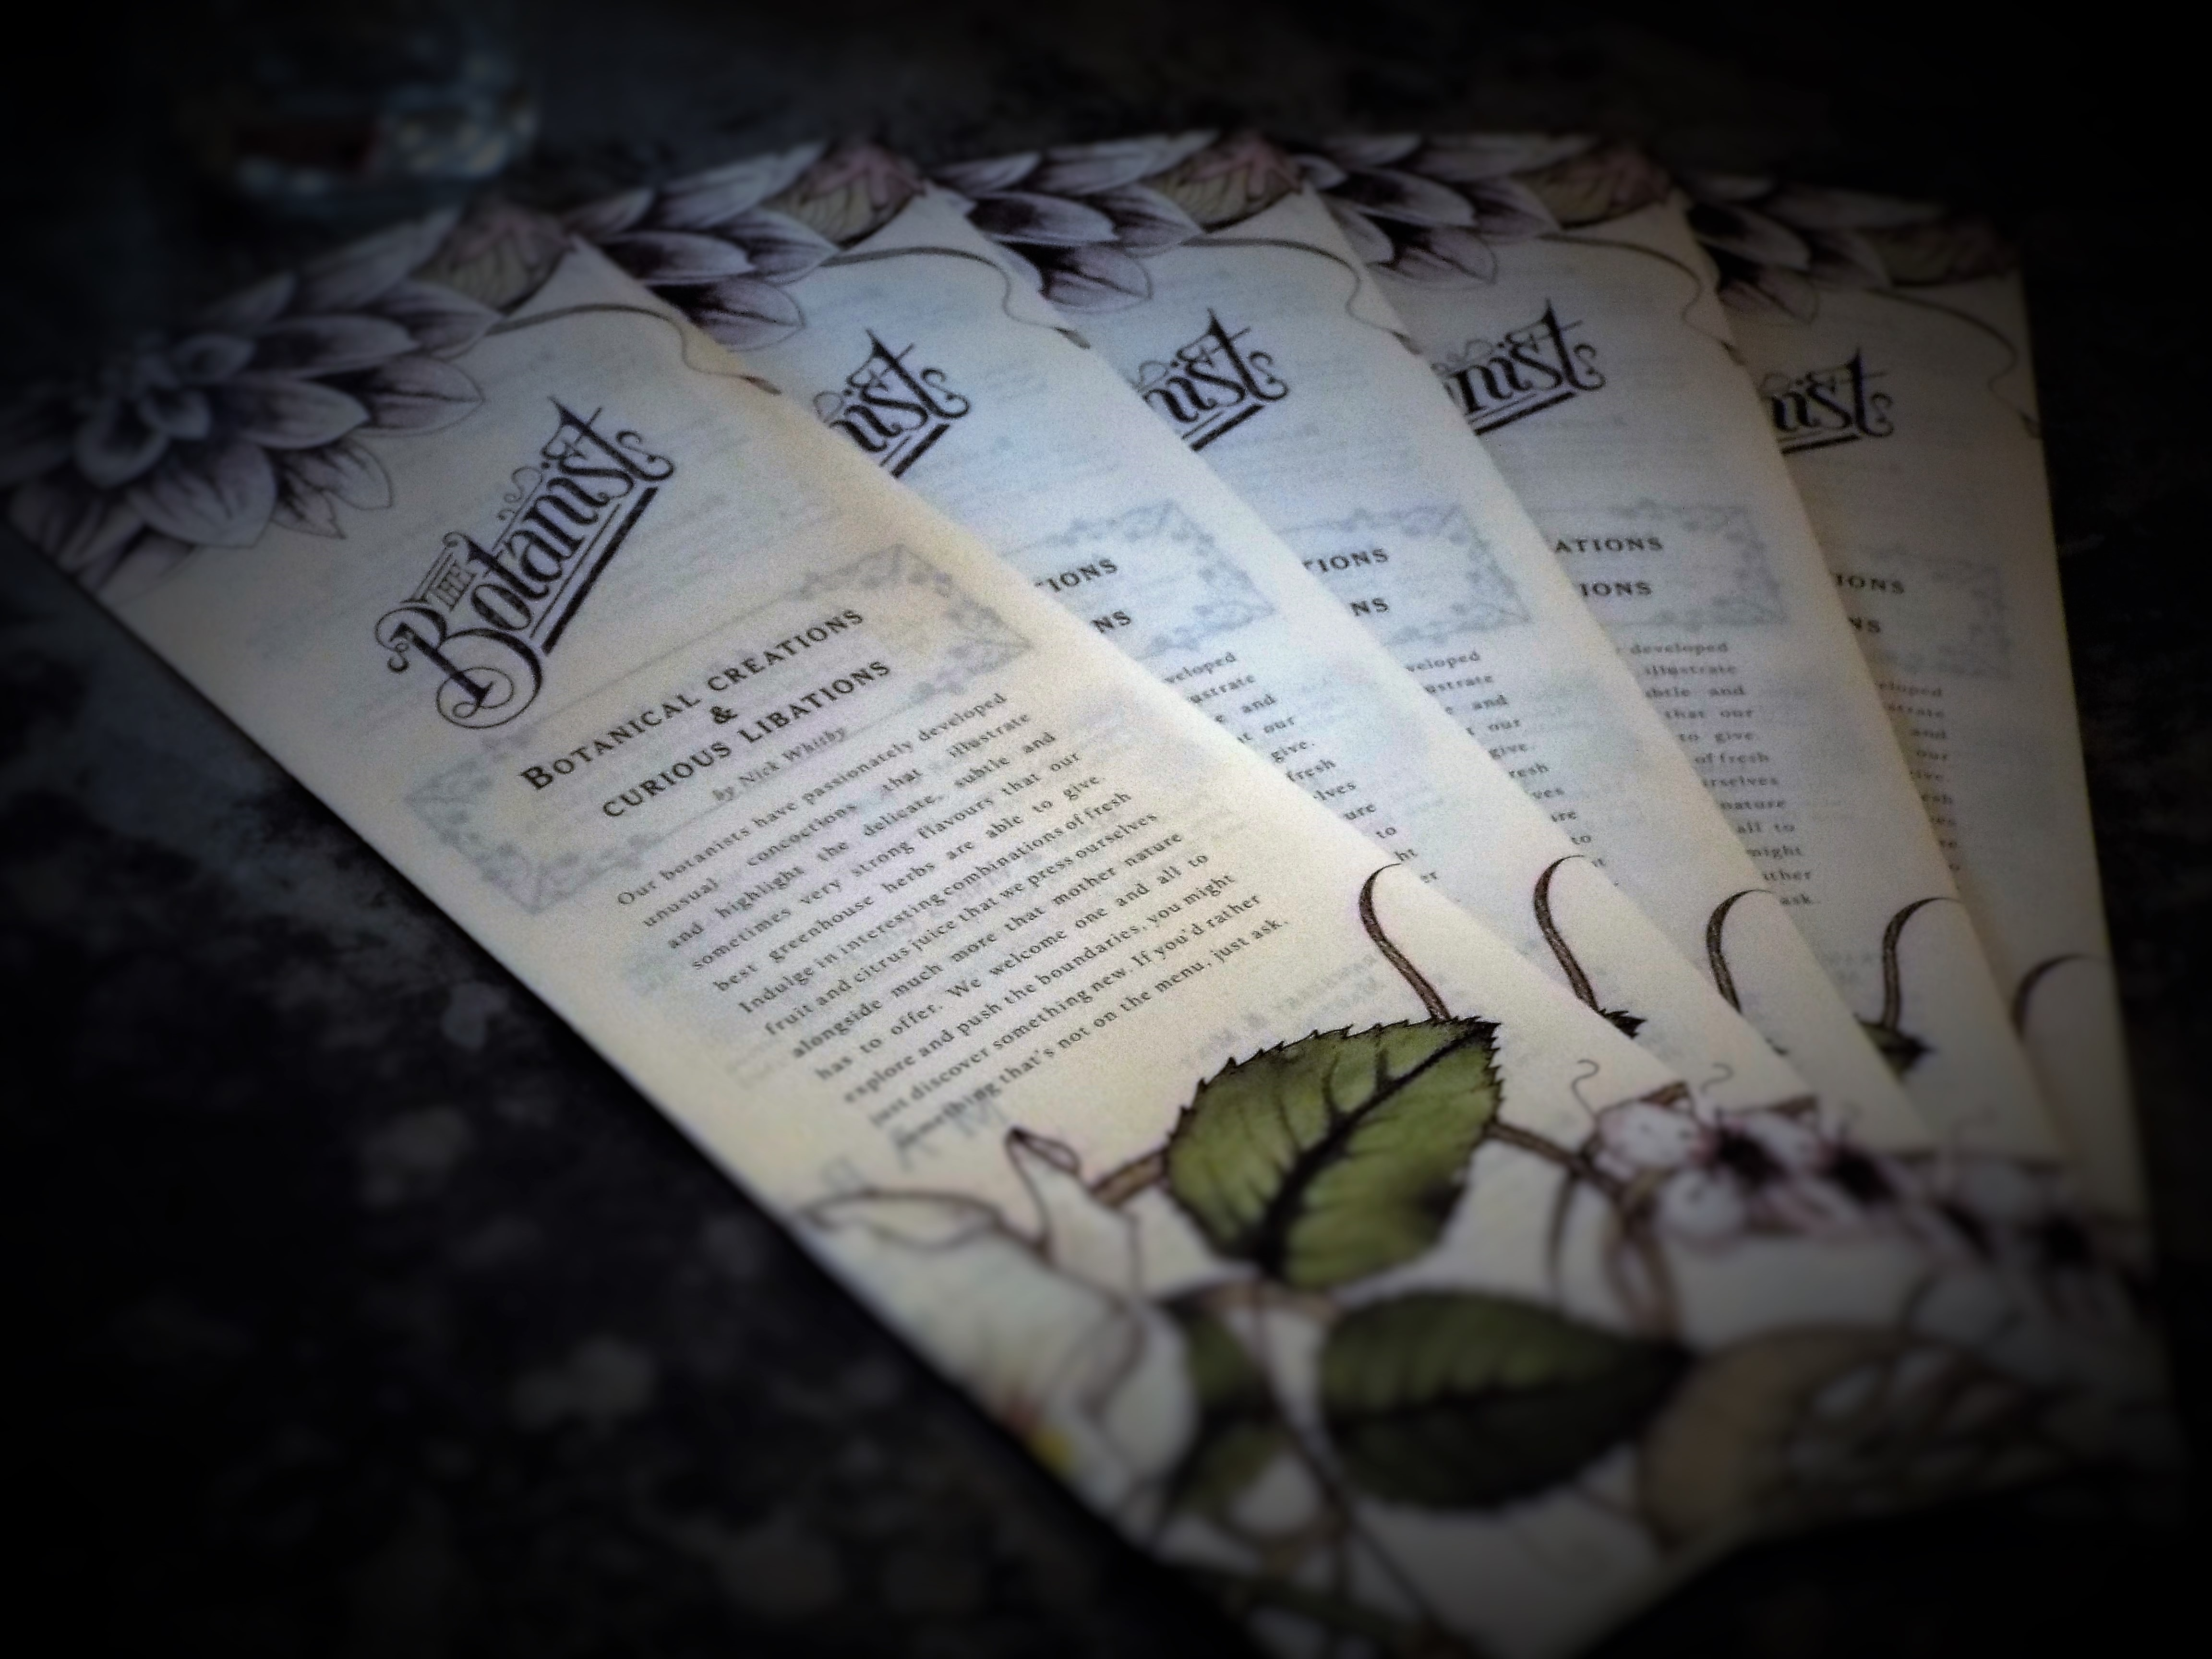 Beverage Botany – The New Cocktail Menu launches at The Botanist